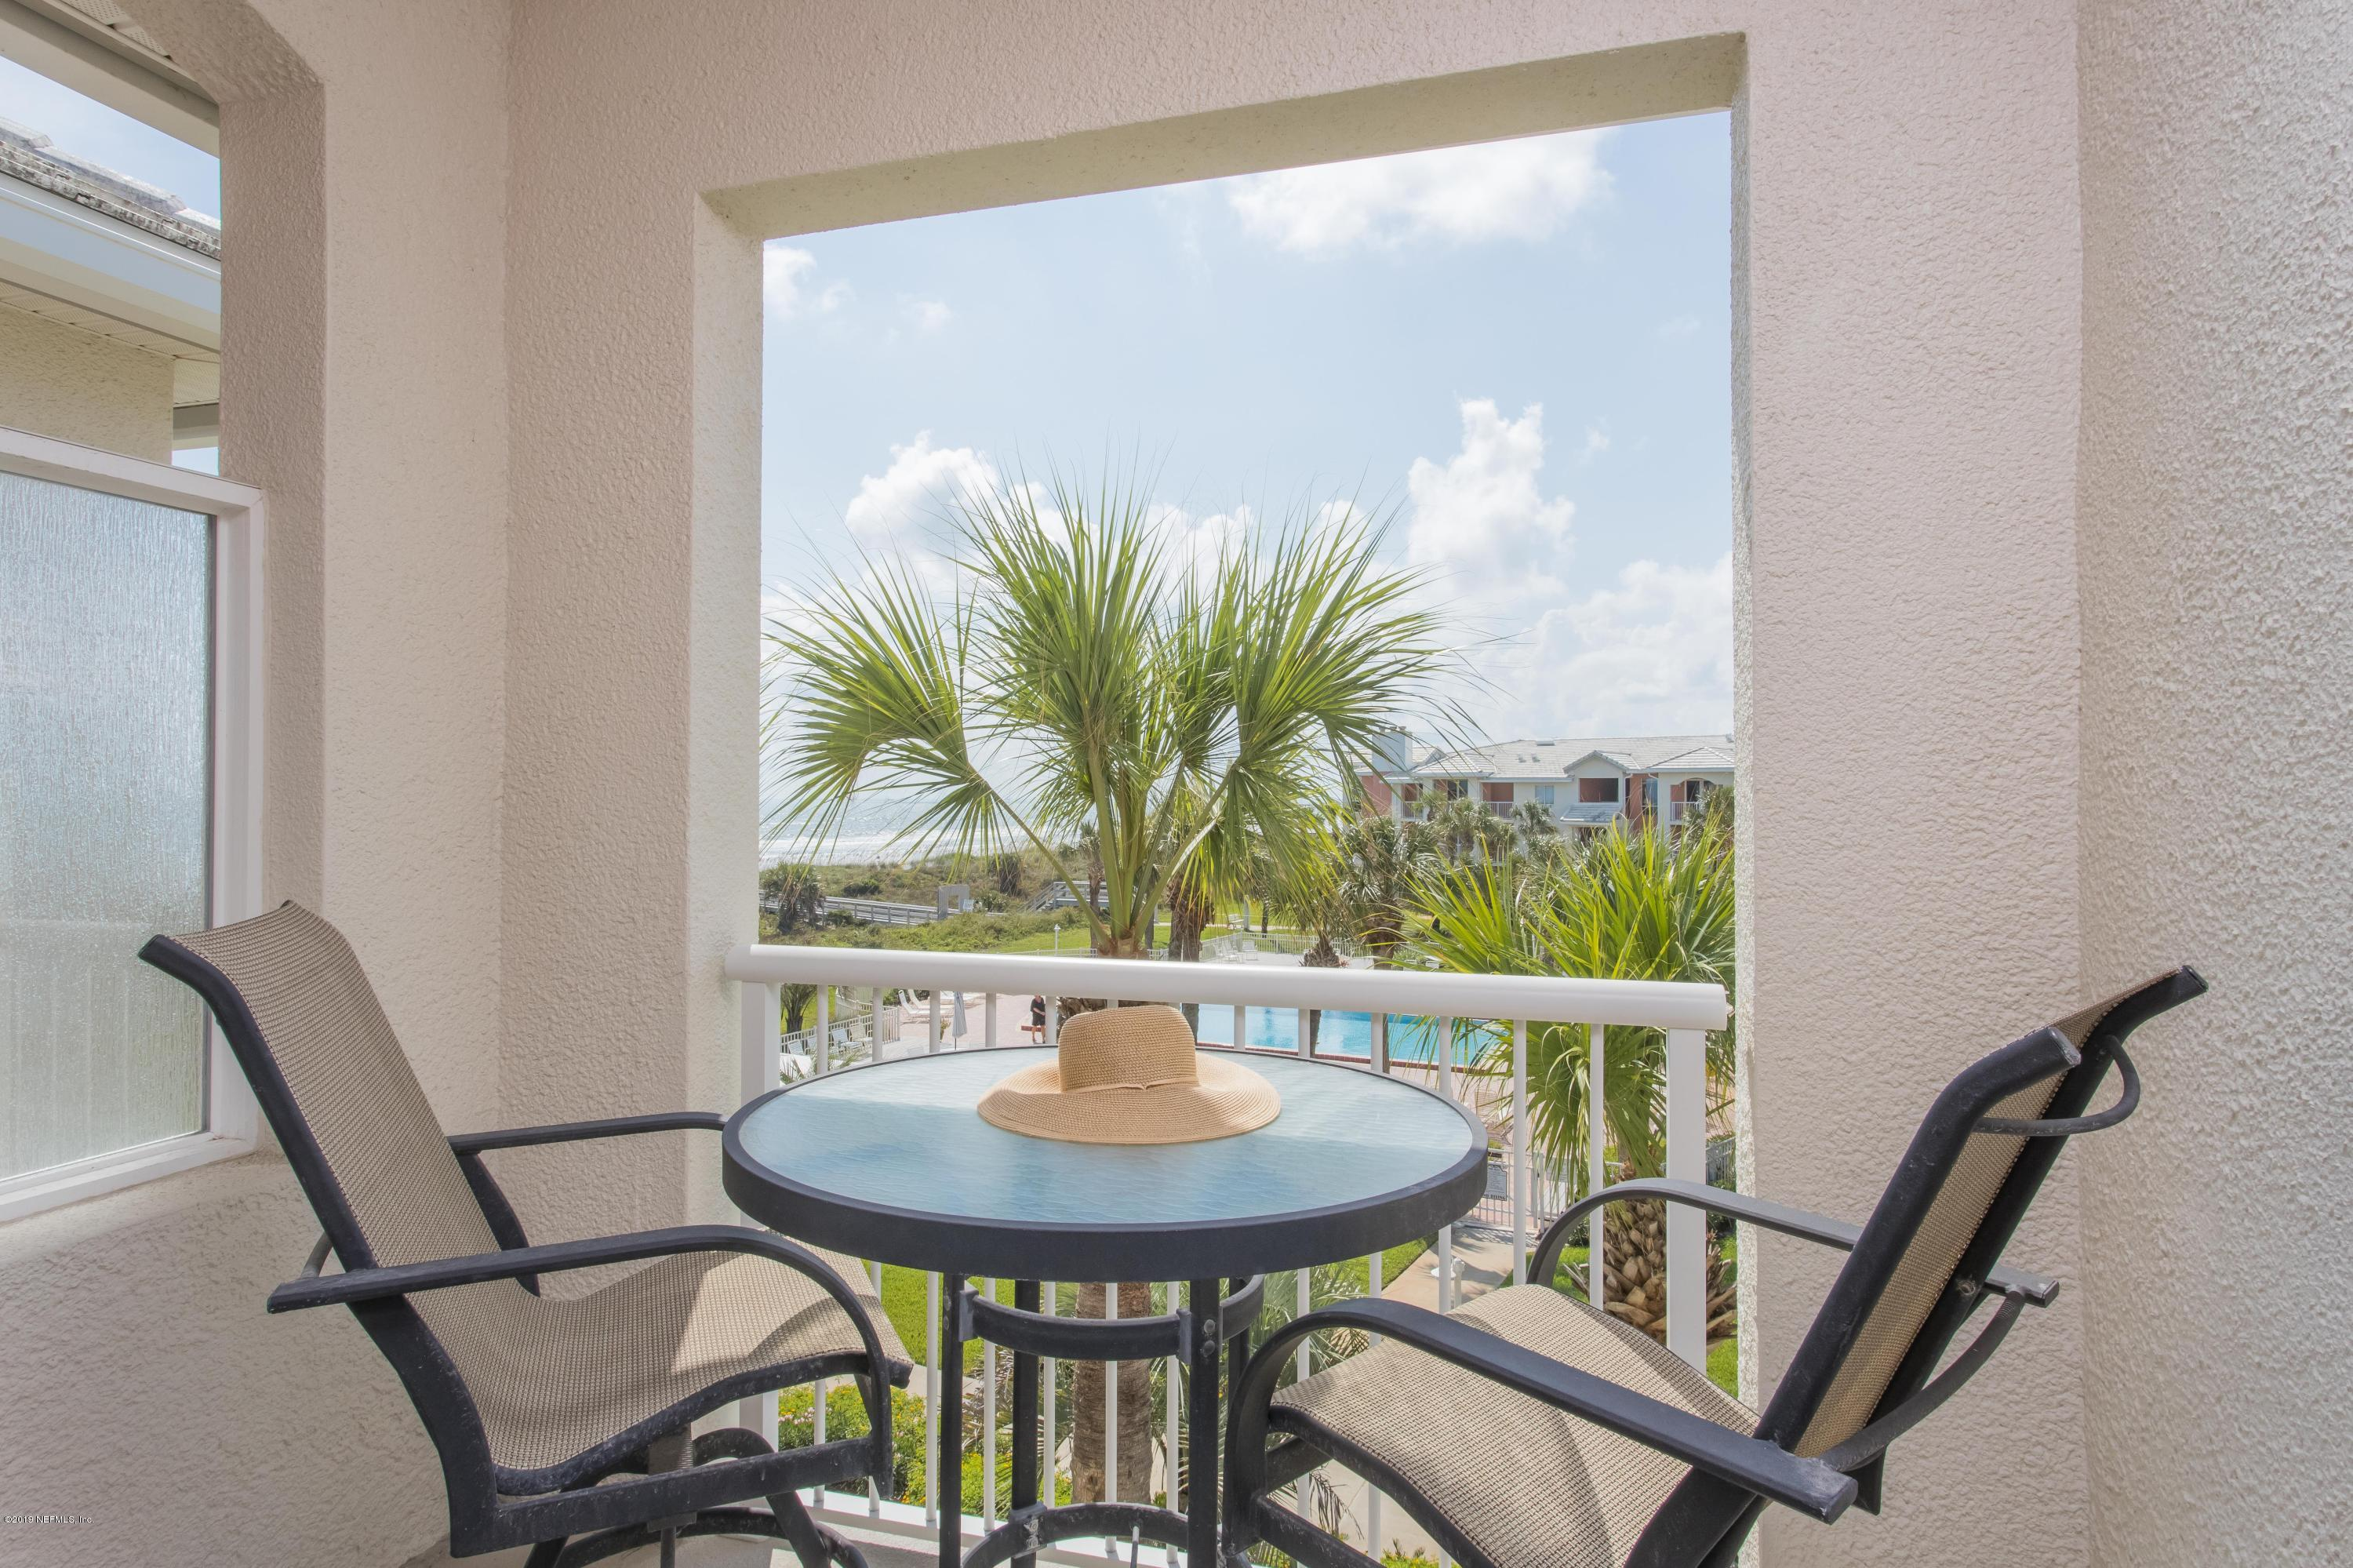 6170 A1A, ST AUGUSTINE, FLORIDA 32080, 3 Bedrooms Bedrooms, ,2 BathroomsBathrooms,For sale,A1A,1026131